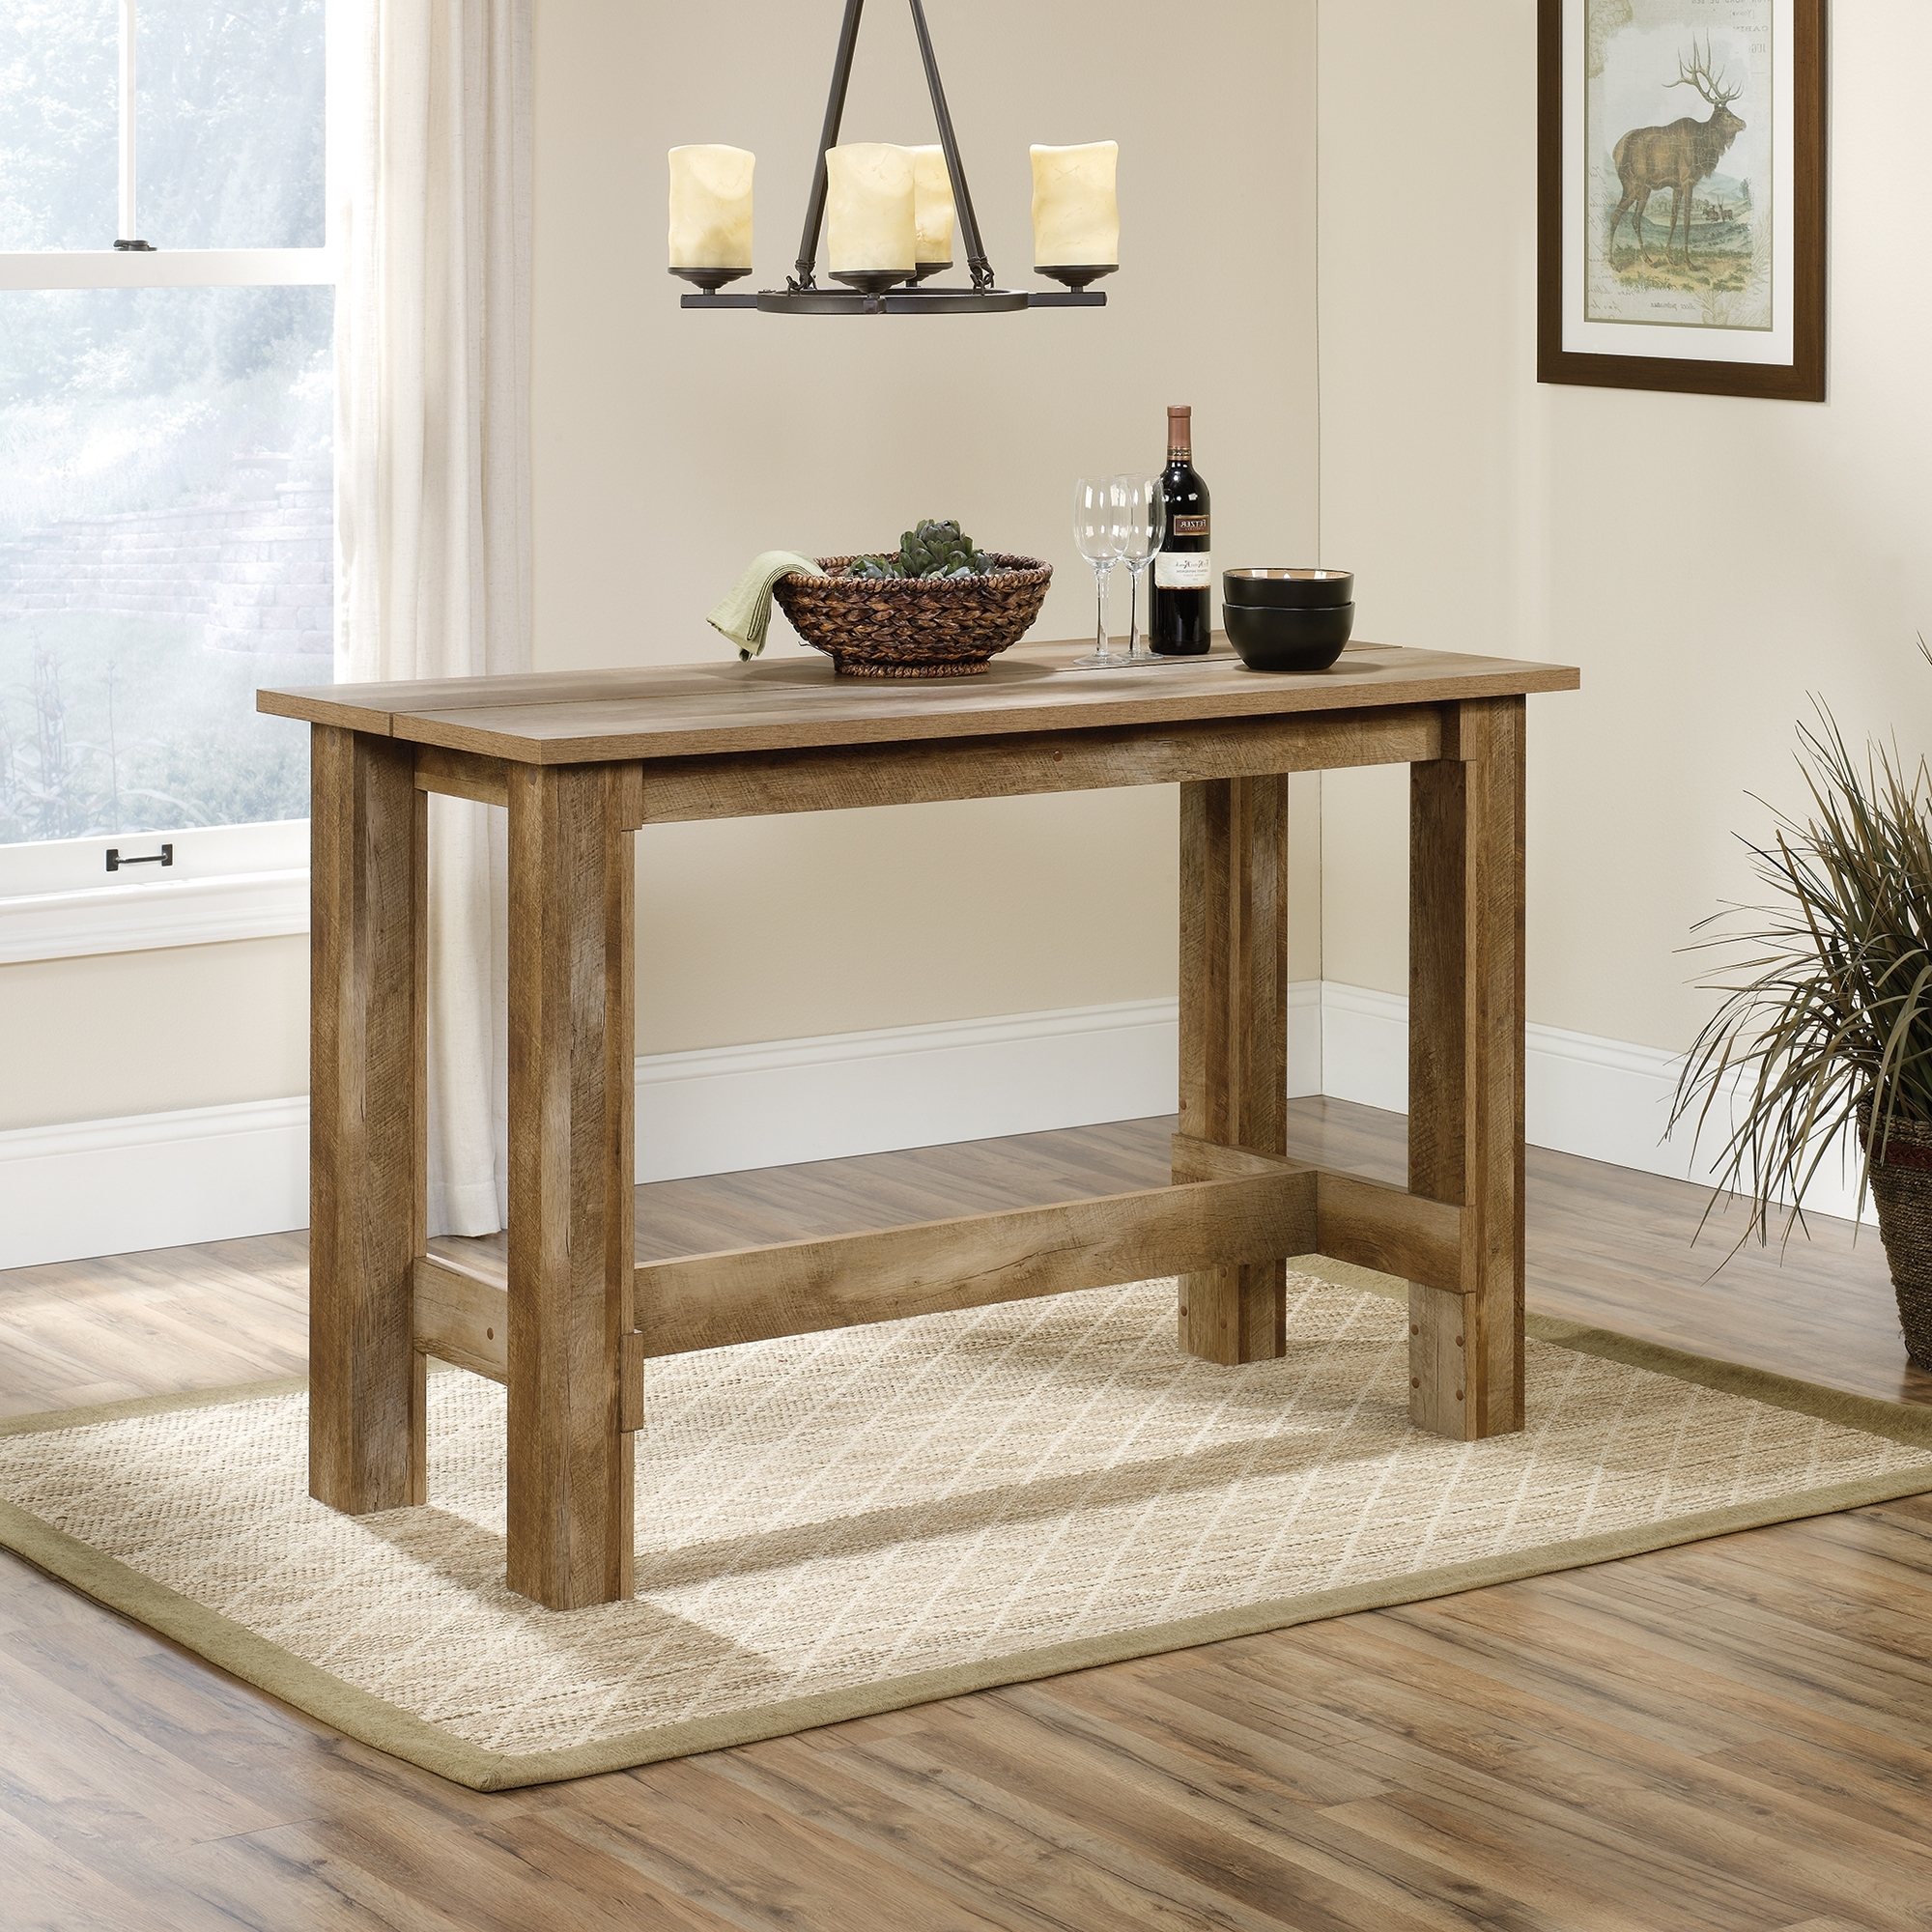 Fashionable Boone Mountain Counter  Height Dinette Table (416698) – Sauder For Craftsman Rectangle Extension Dining Tables (View 15 of 25)